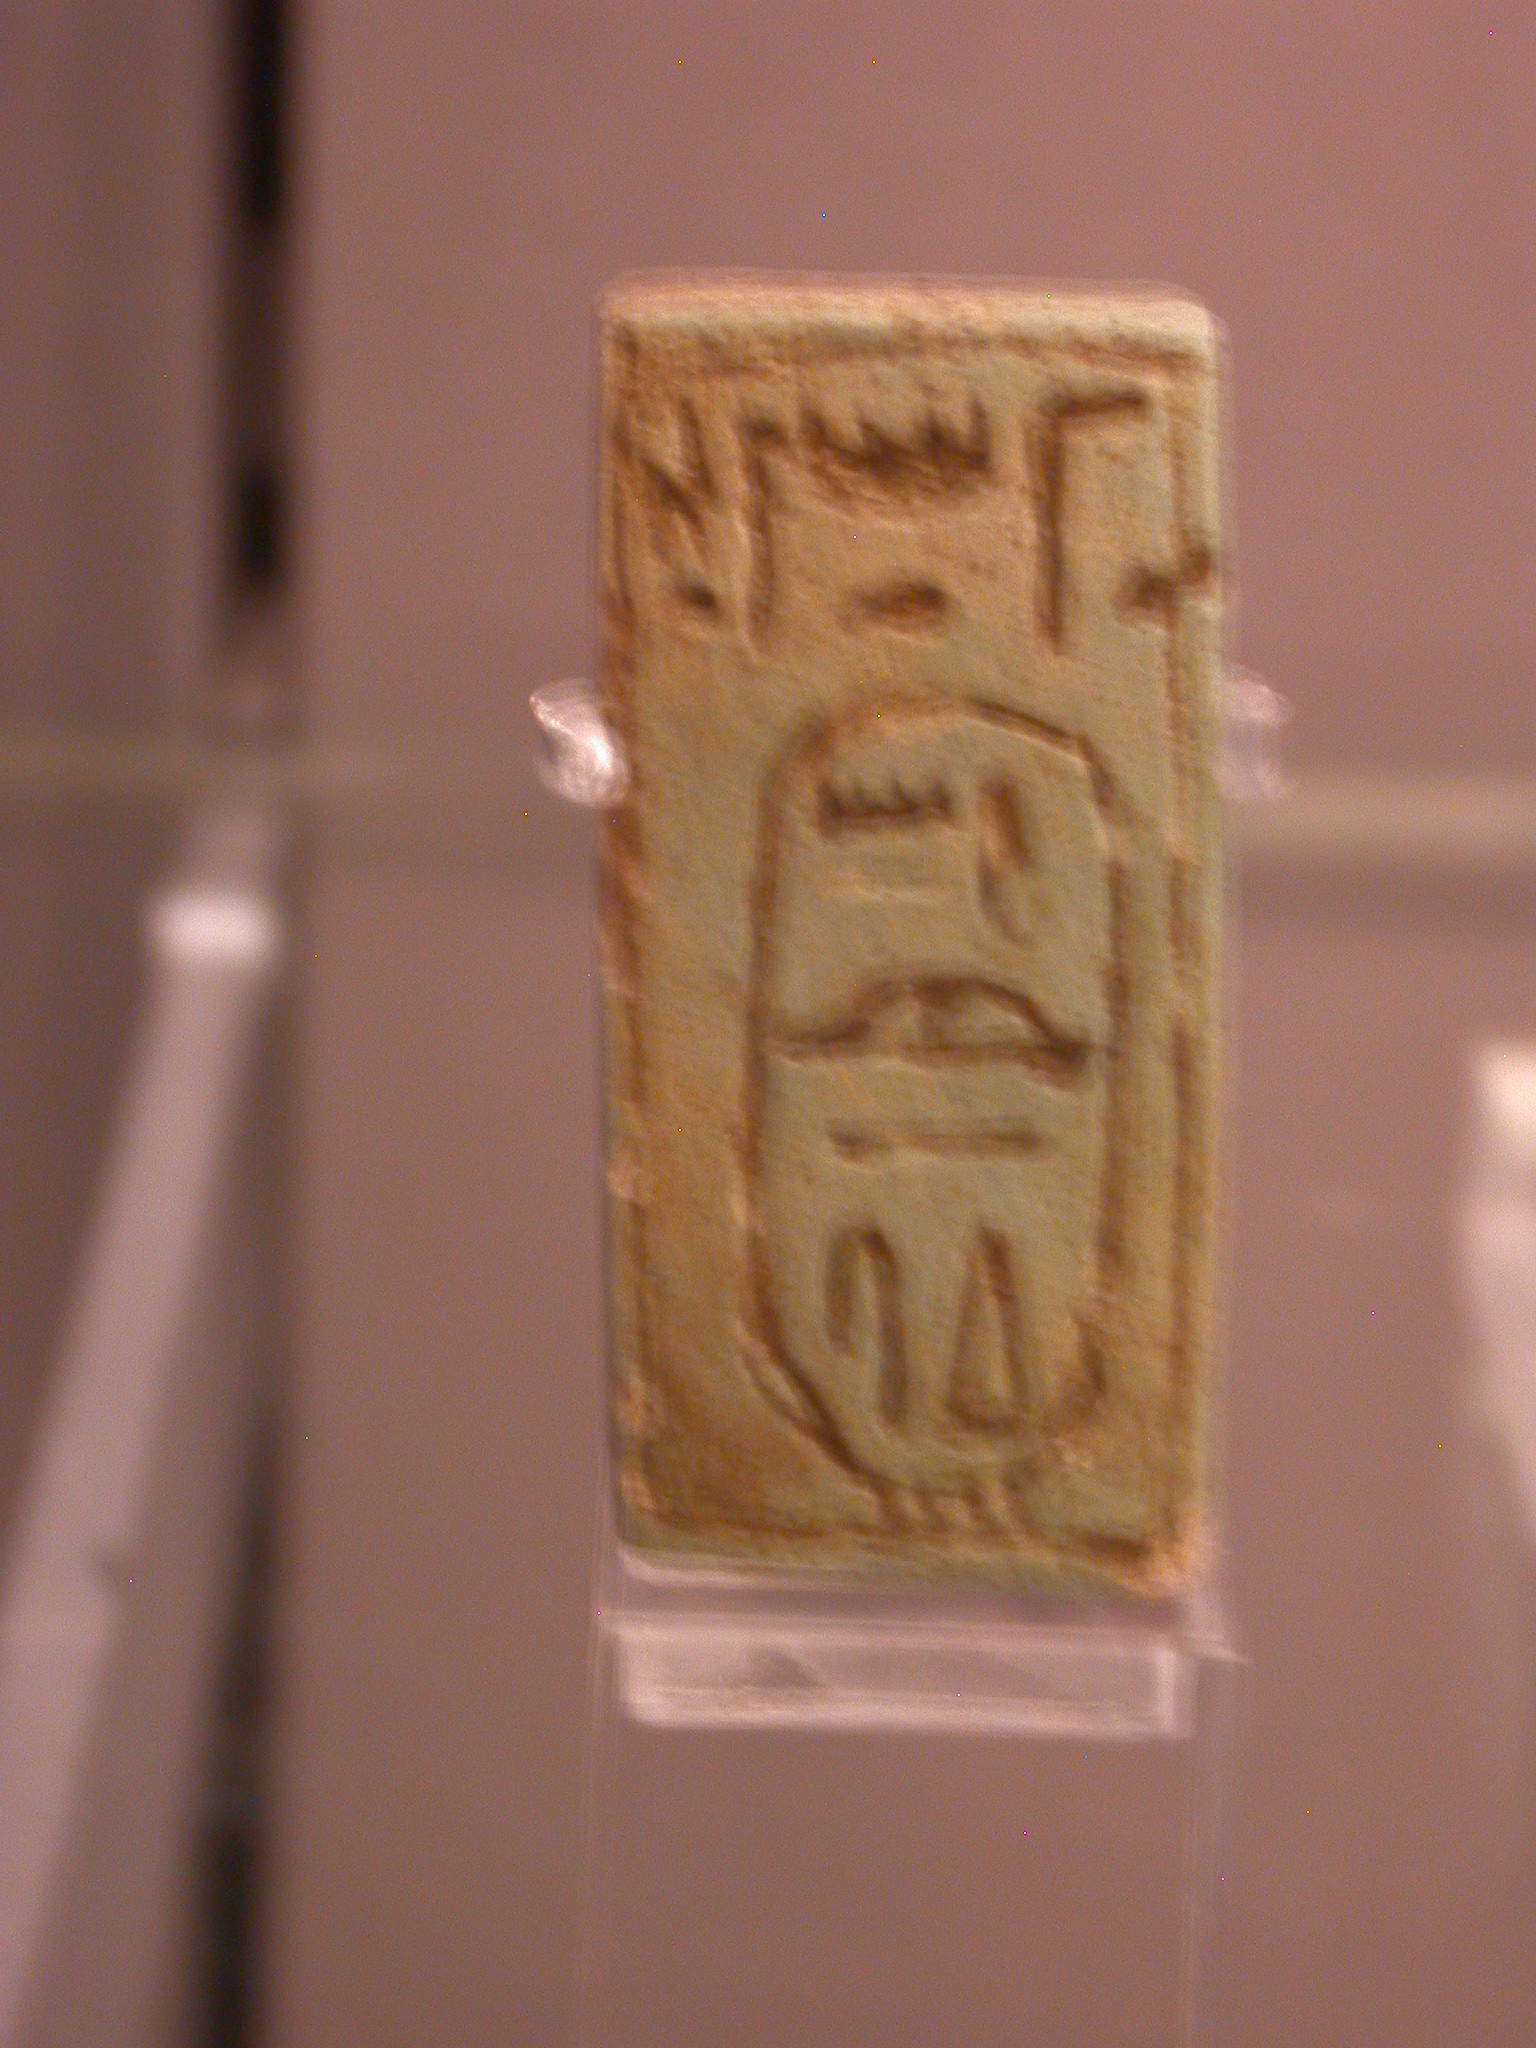 Amenirdas Cartouche, Faience, 25th Dynasty, 746-664 BCE, Egypt, in Fitzwilliam Museum, Cambridge, England